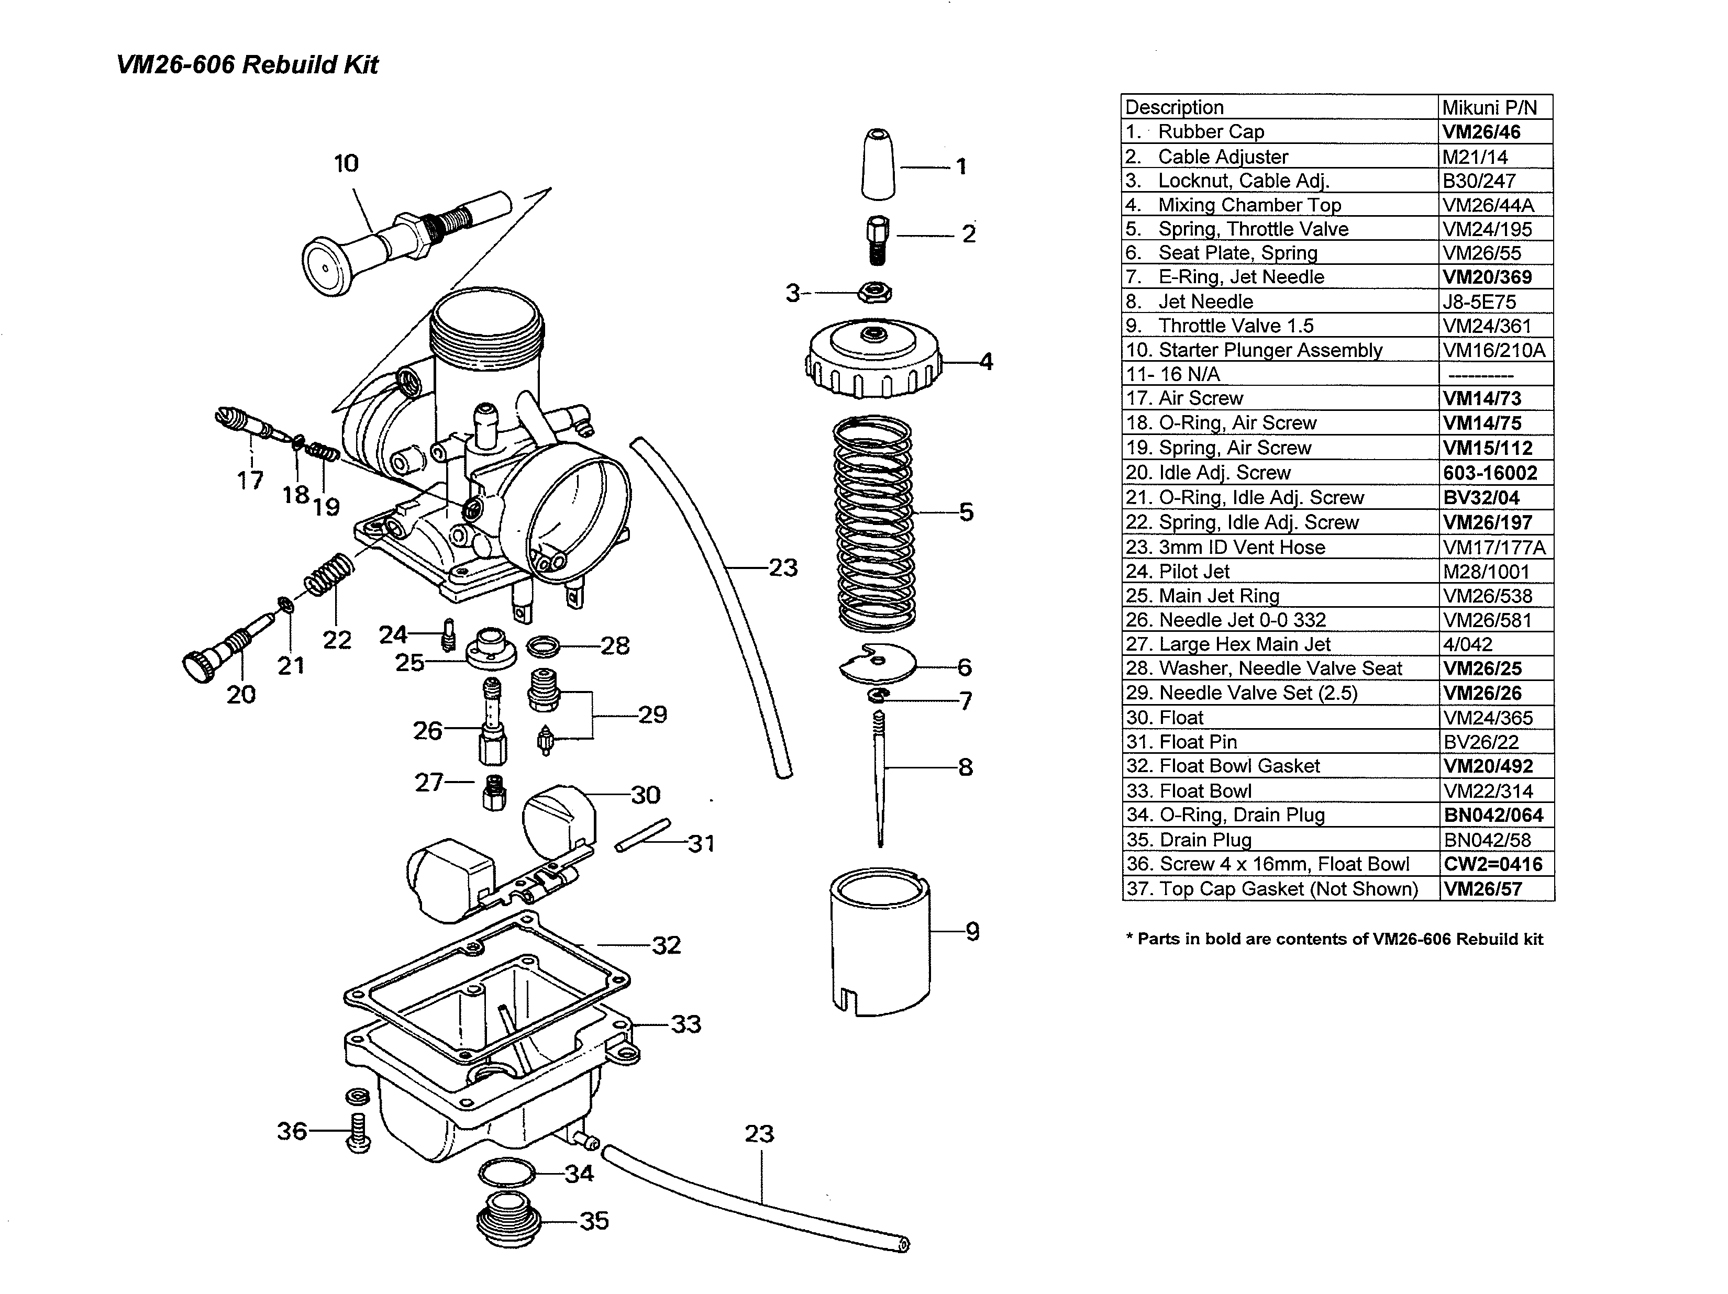 Difference In Mikuni Carbs Manual Guide